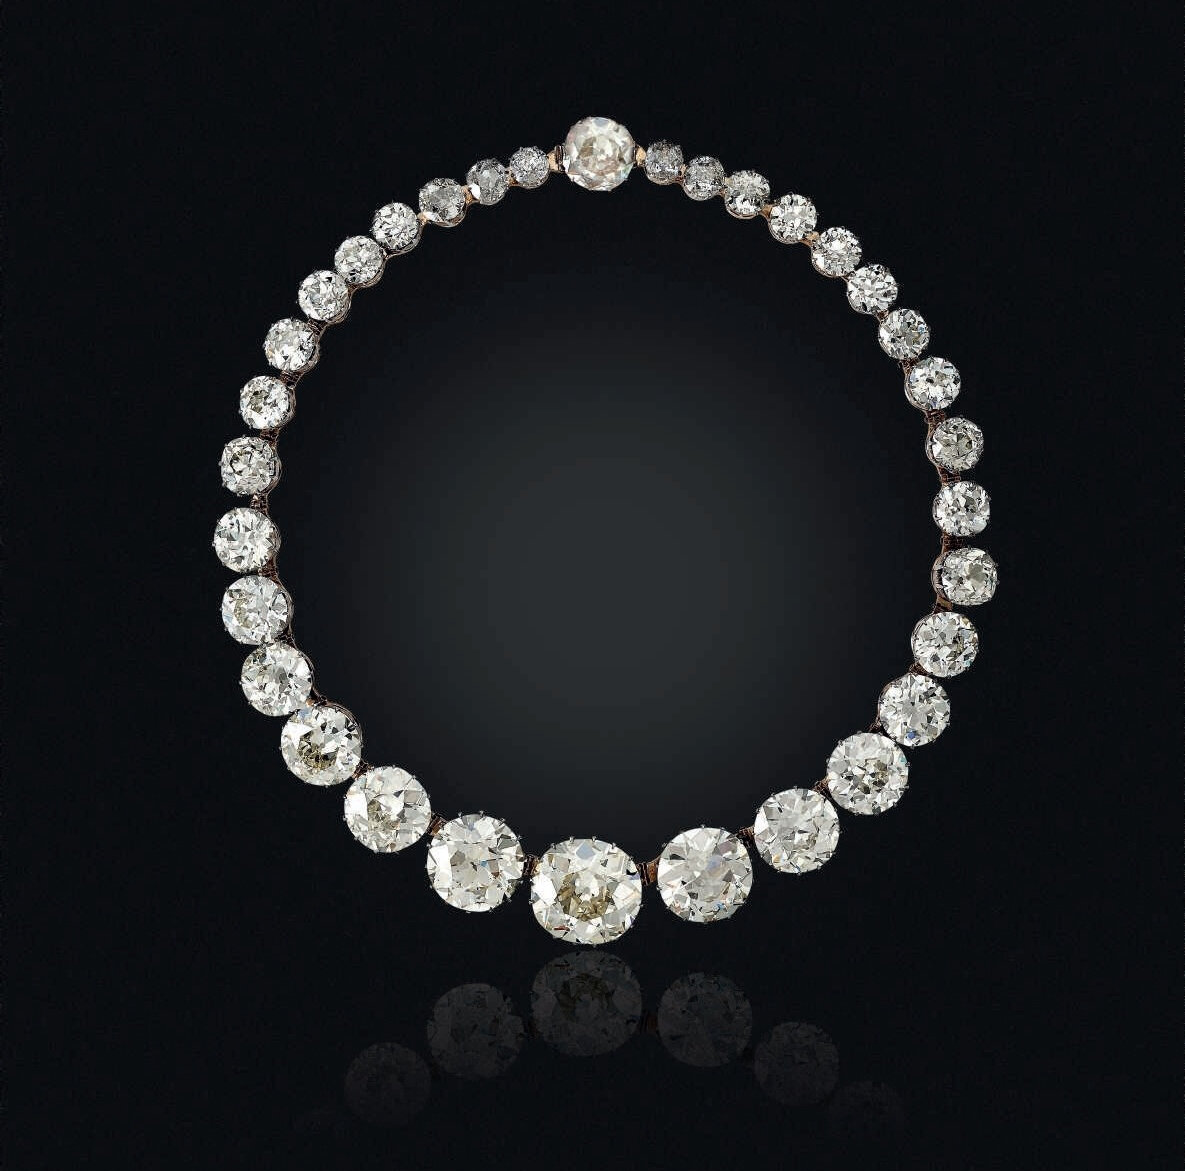 f00ee4e3c An antique diamond rivière necklace originally from the collection of the  Nizam of Hyderabad comprising almost 200 carats of Golconda diamonds.